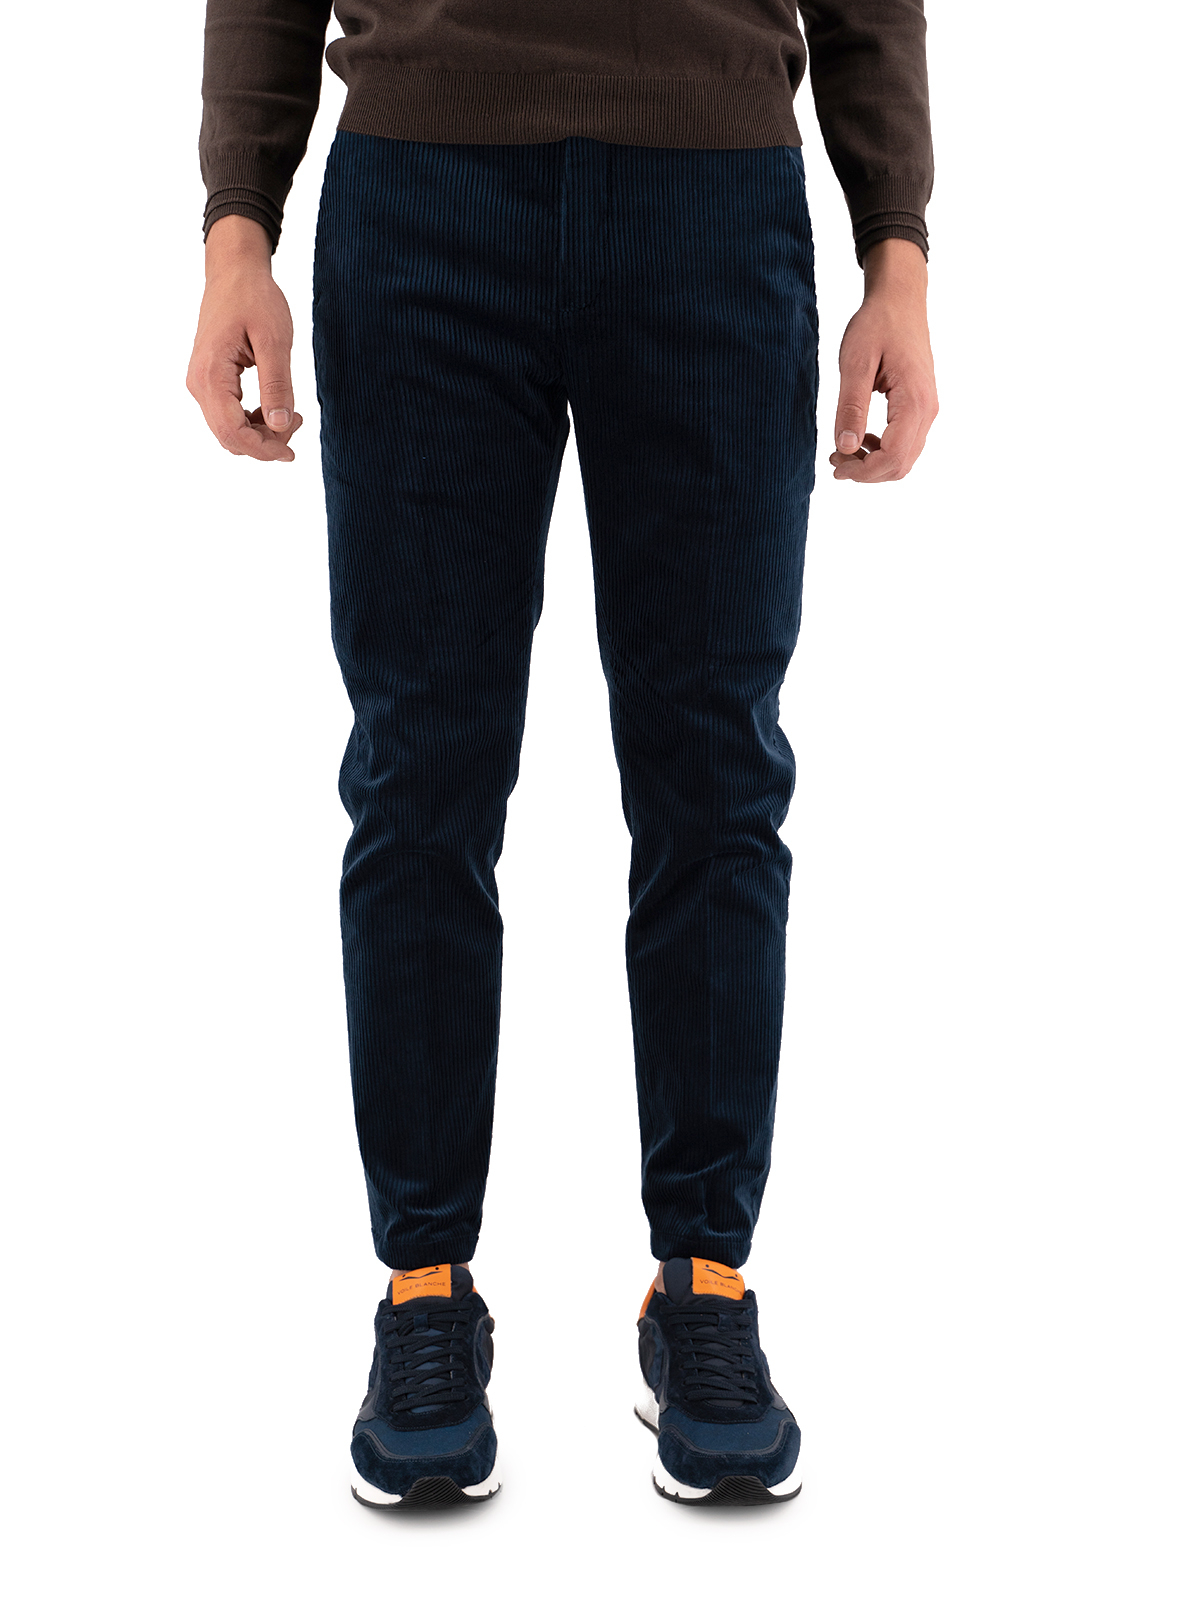 Department Five Pantalone U19P05 F1920 PRINCE